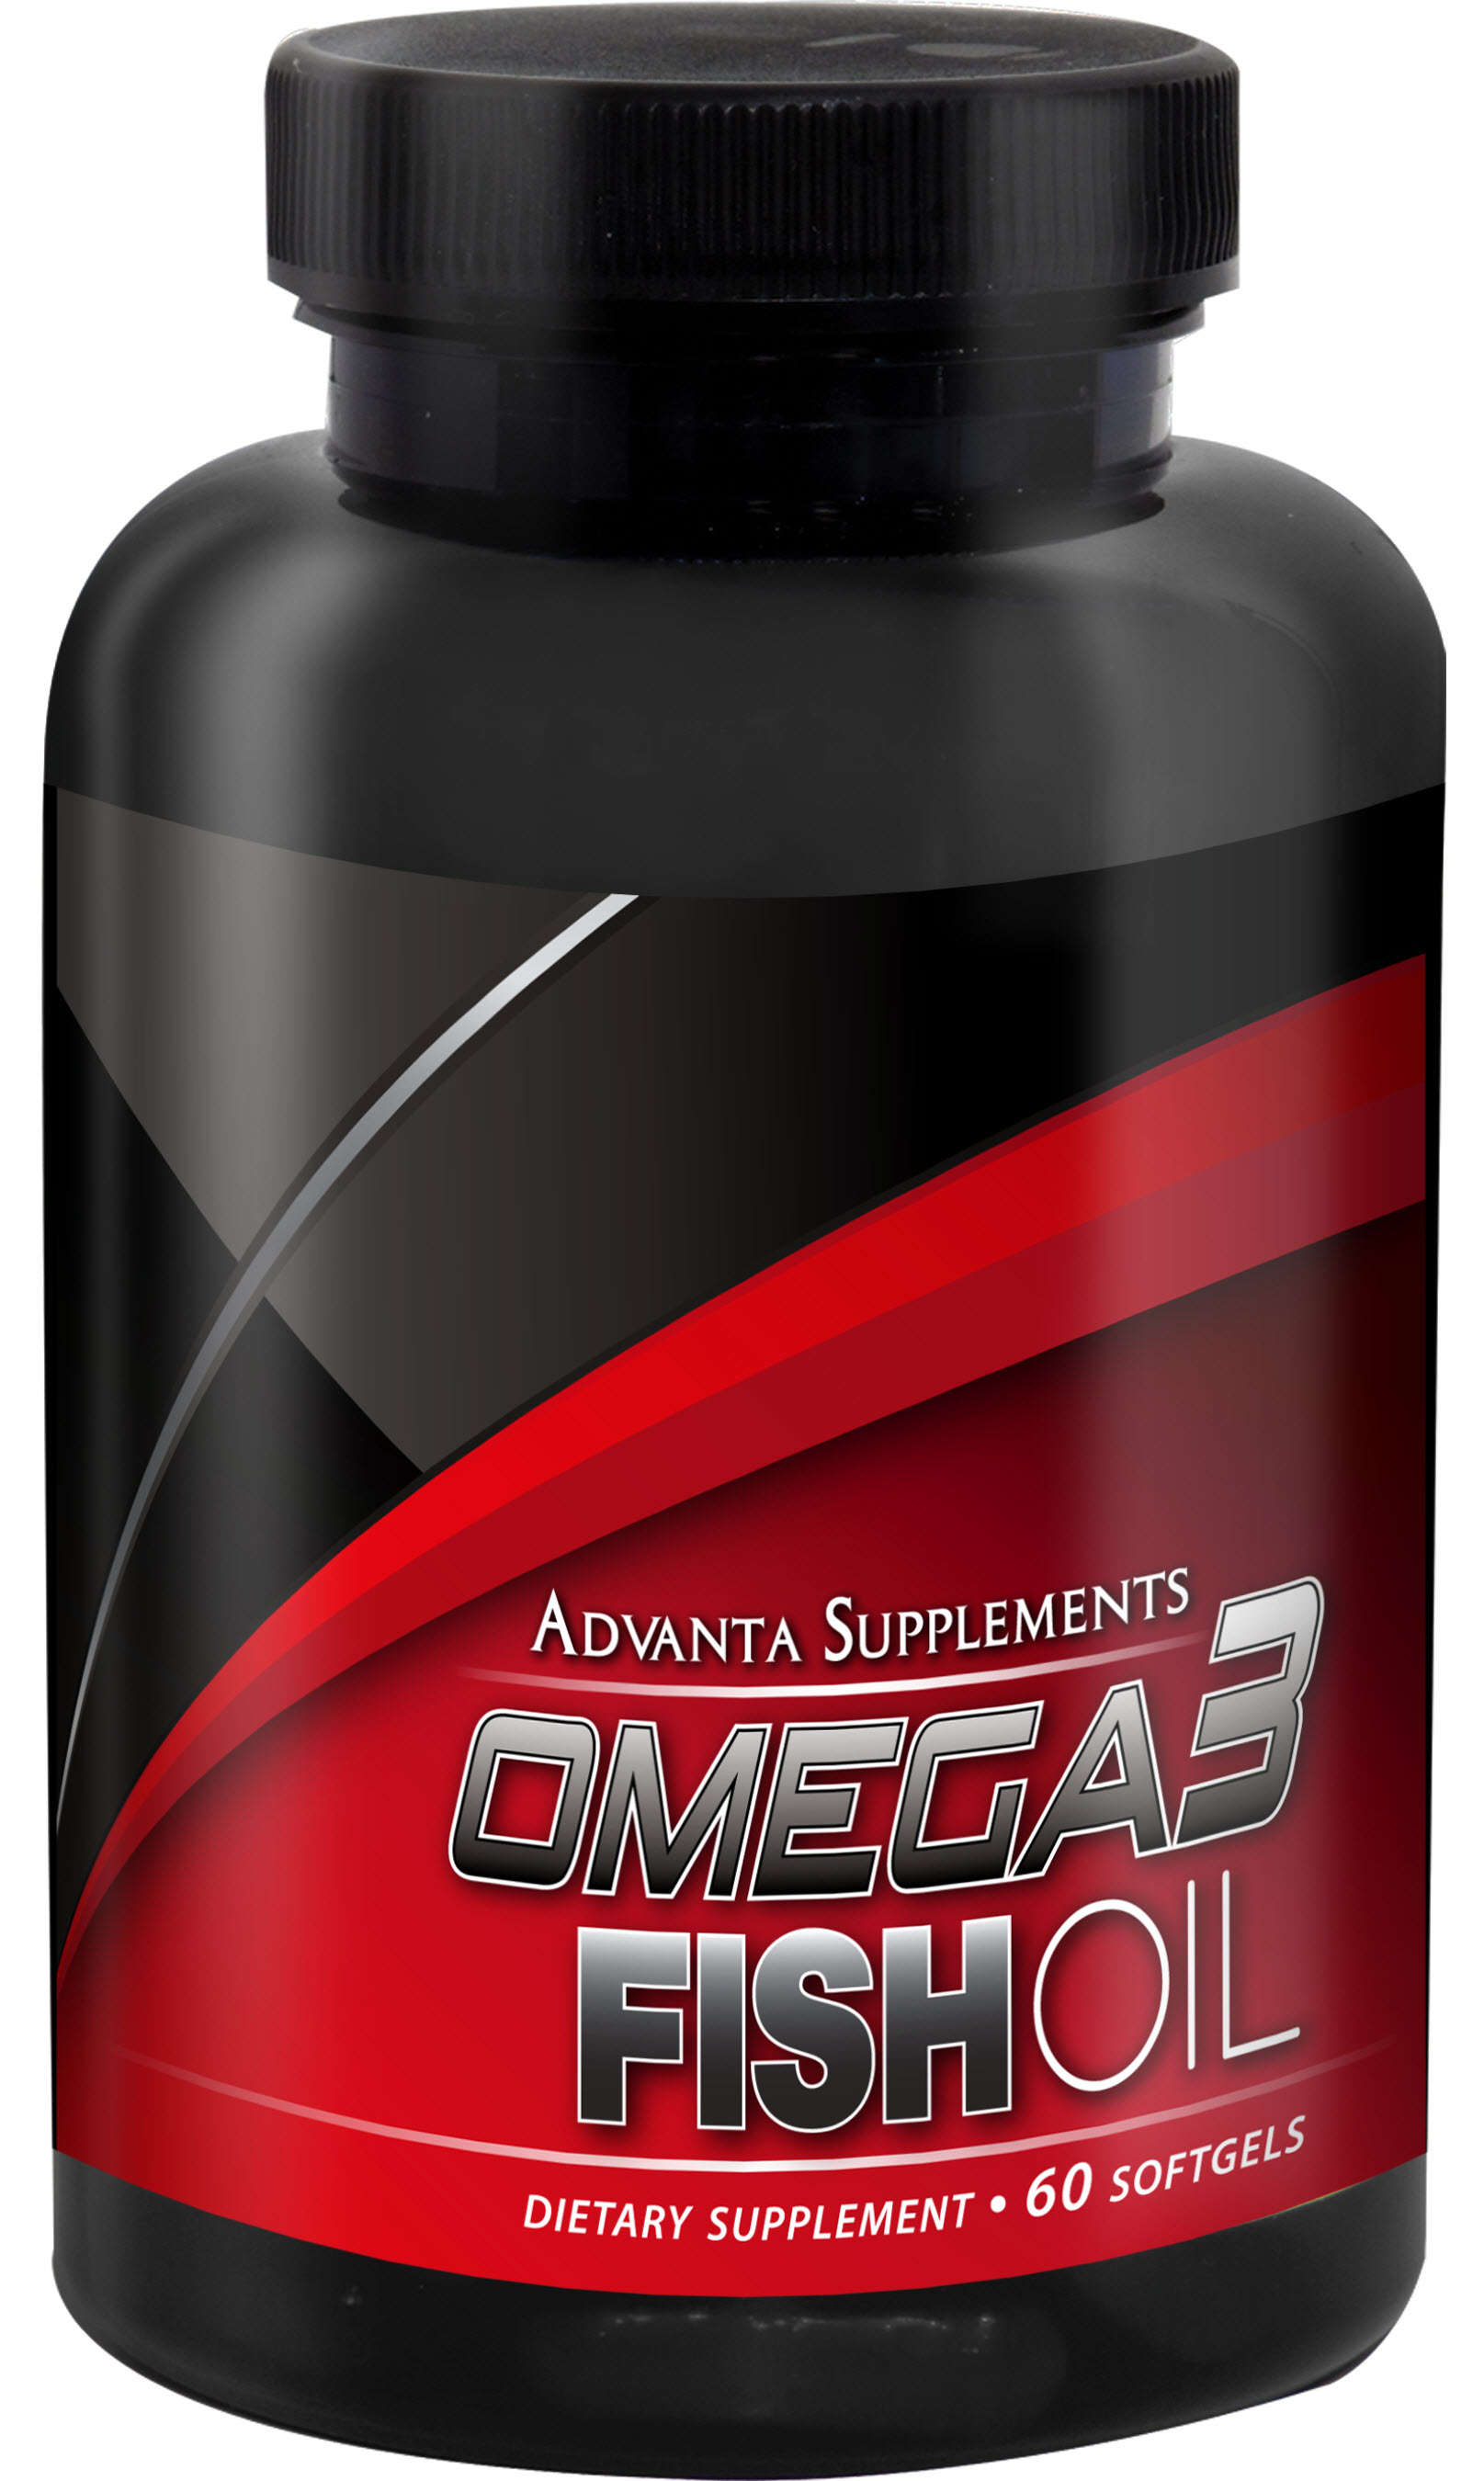 Advanta supplements introduces palate pleasing omega3 fish for Fish oil good or bad